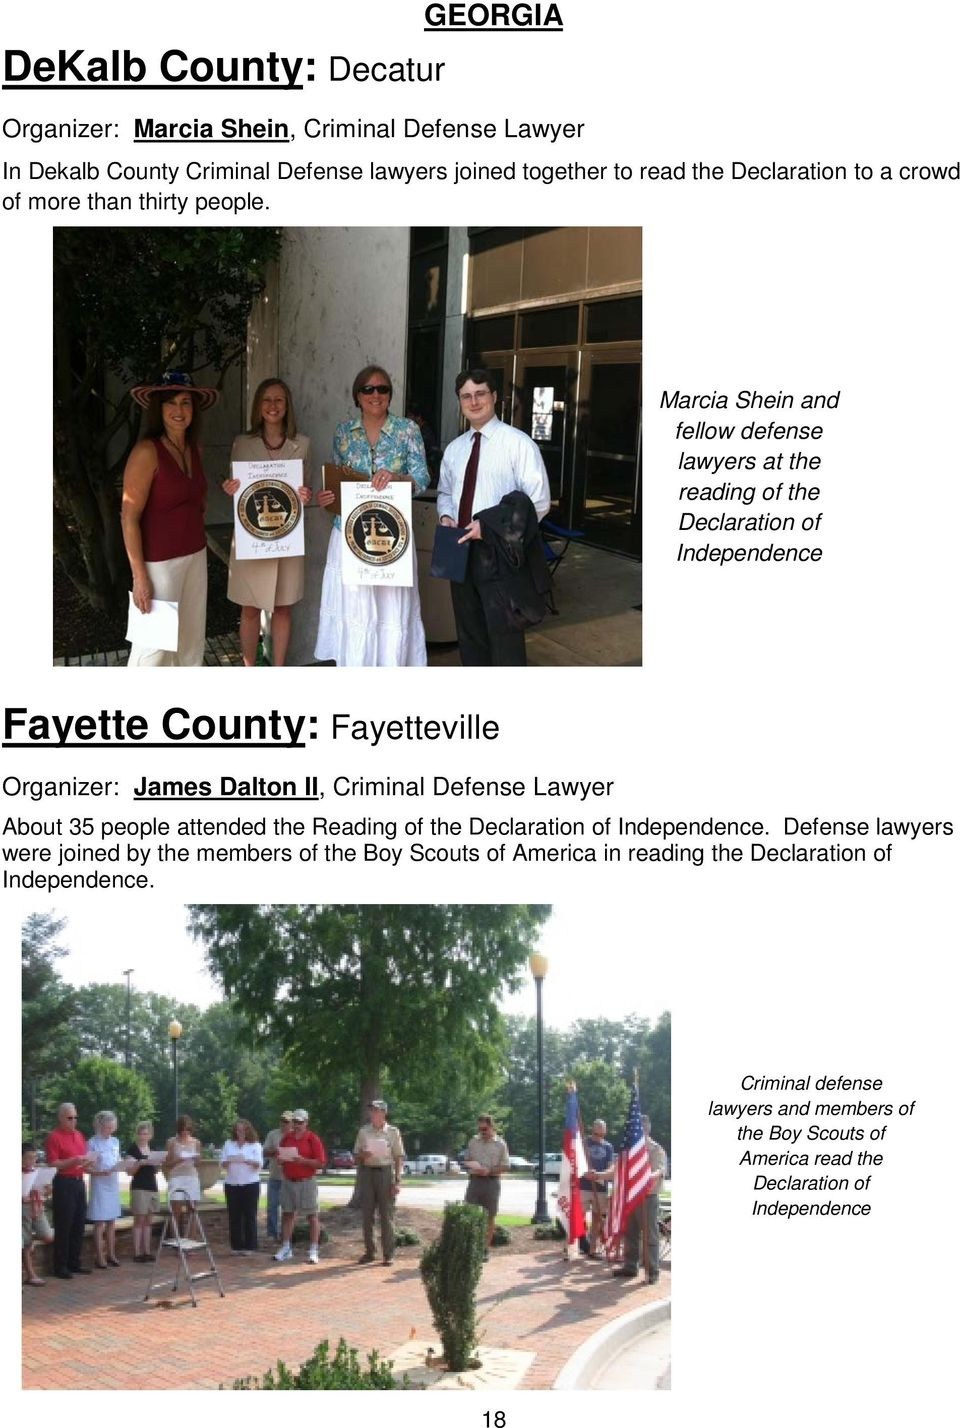 Marcia Shein and fellow defense lawyers at the reading of the Declaration of Independence Fayette County: Fayetteville Organizer: James Dalton II, Criminal Defense